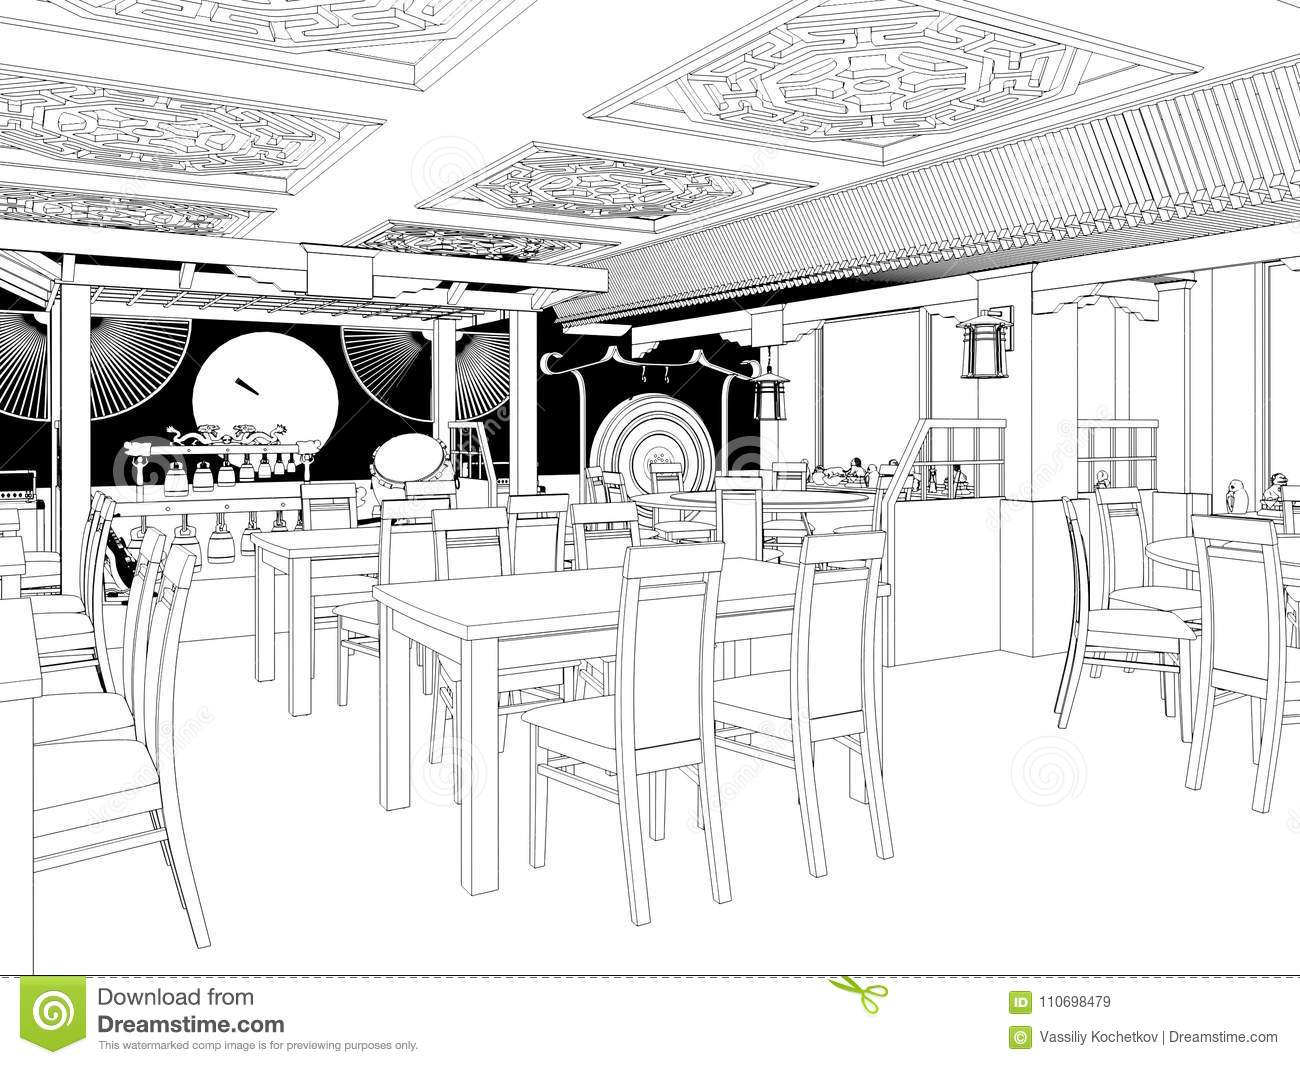 Render black and white sketch of the chinese restaurant interior design